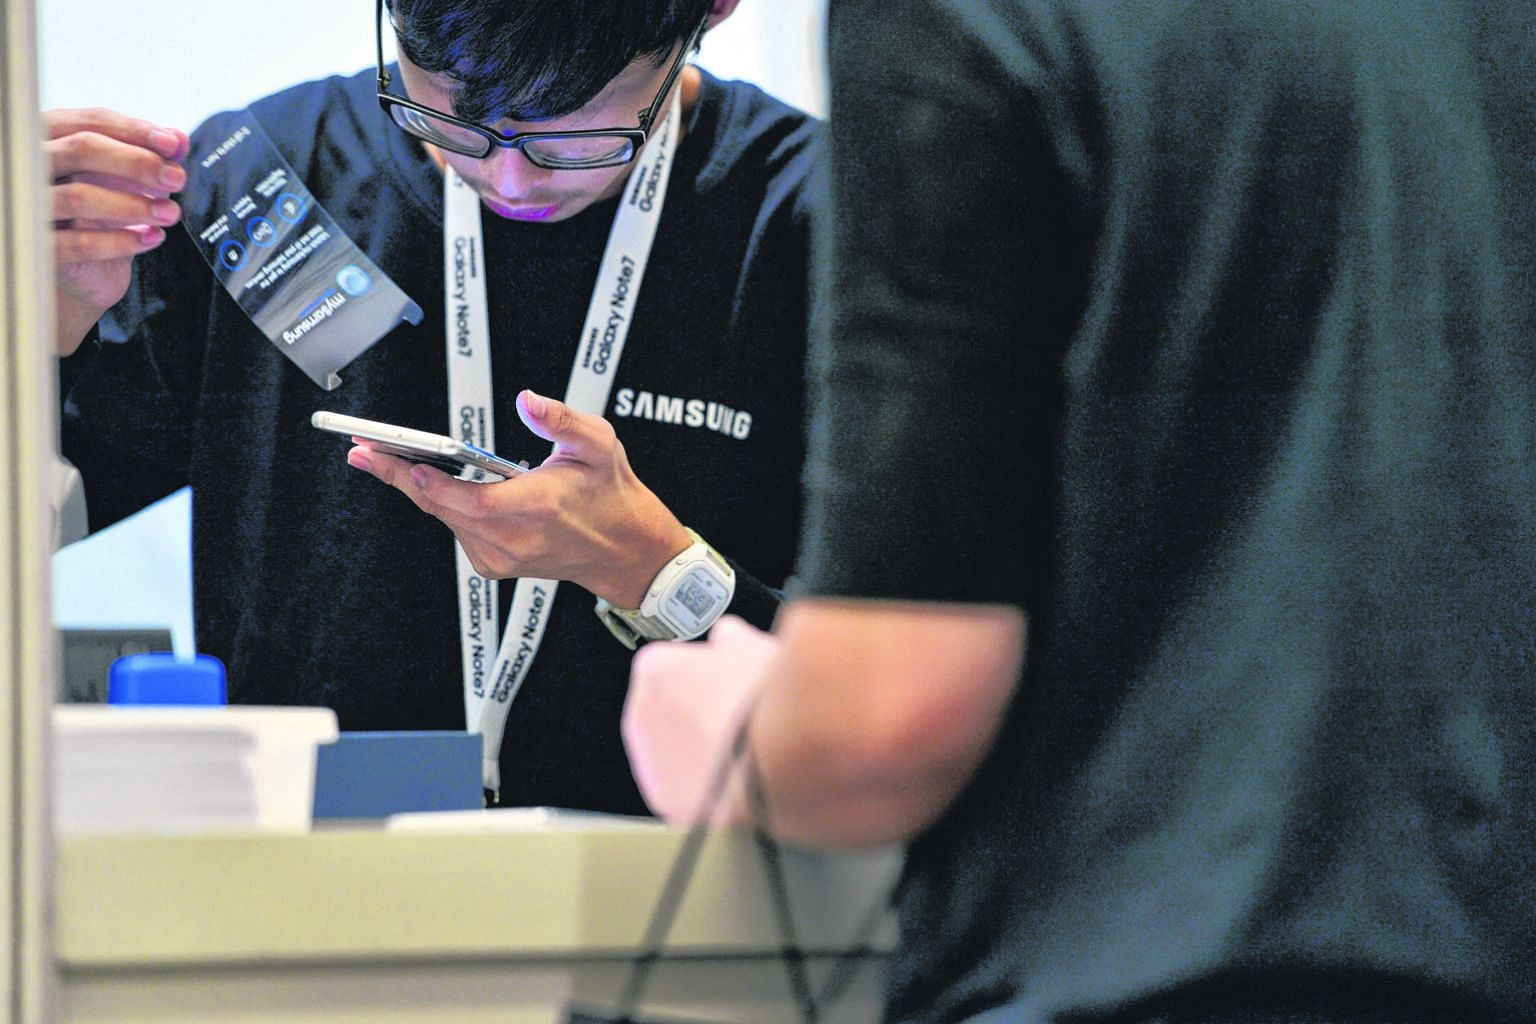 A Samsung representative serving a customer at The Crescent at the Suntec Singapore Convention and Exhibition Centre during the exchange arrangement for the Note7 in September. Globally, 2.5 million units were recalled.